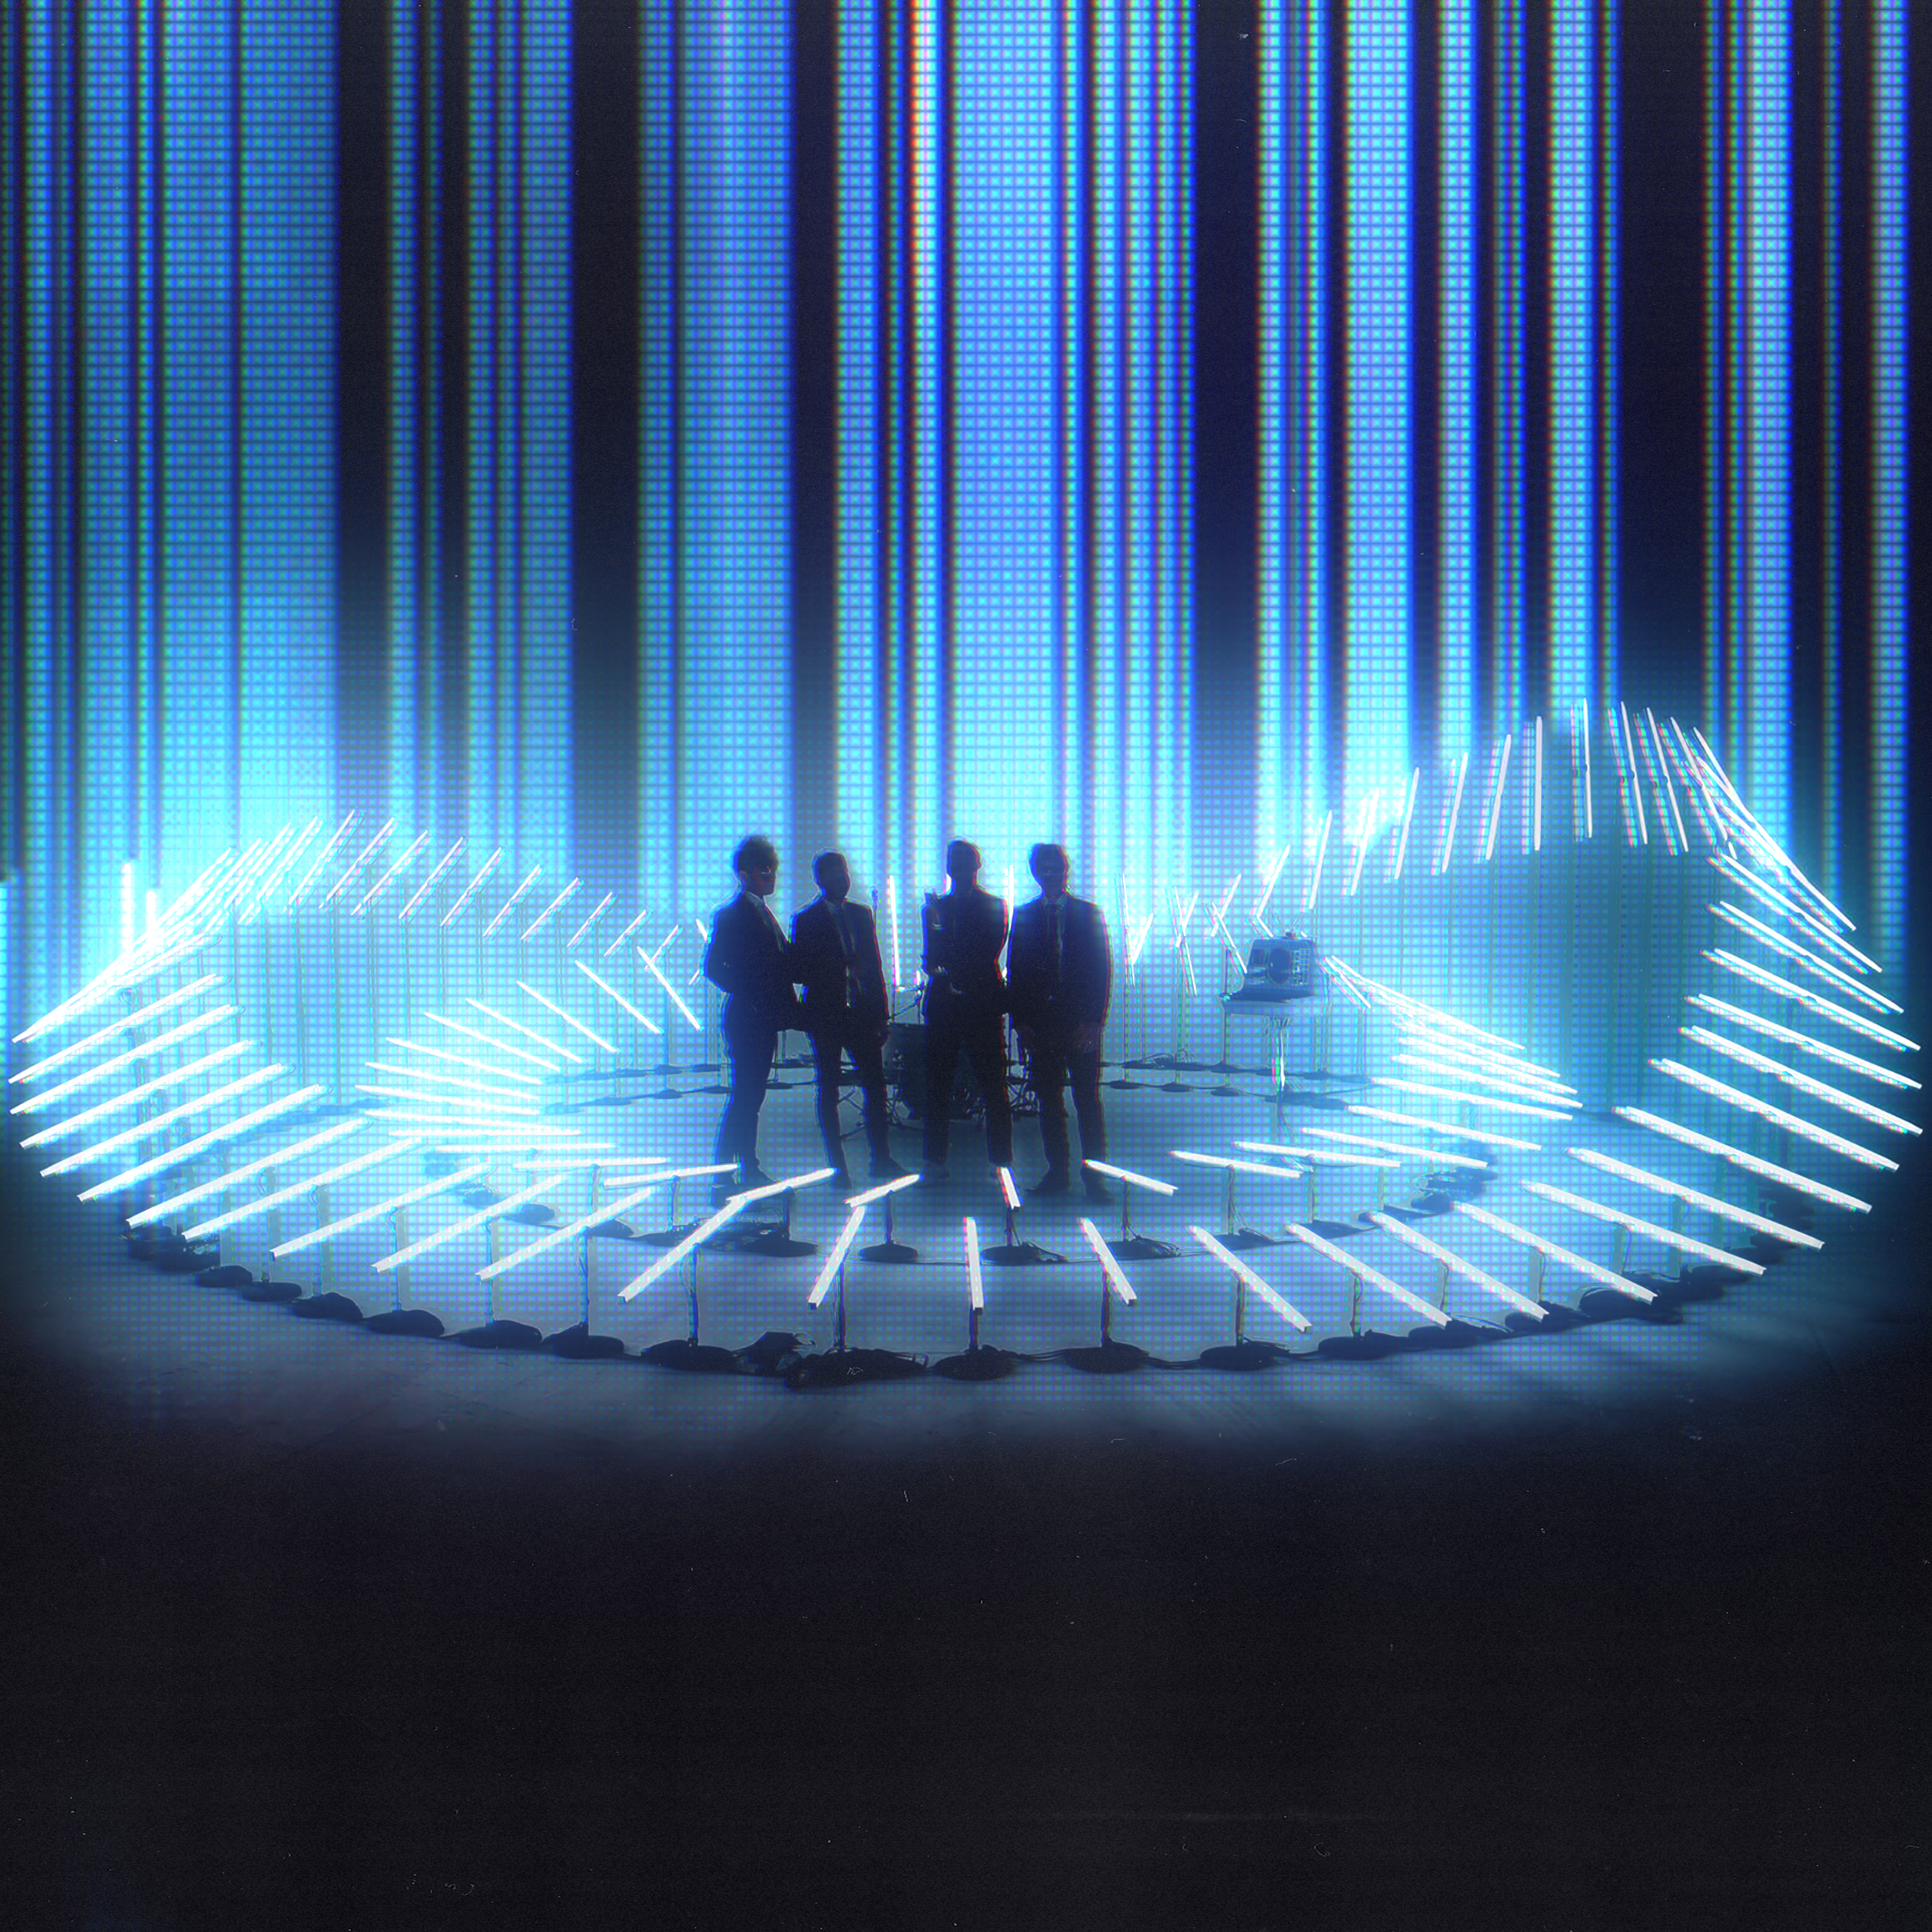 stc_entershikari_3000x3000